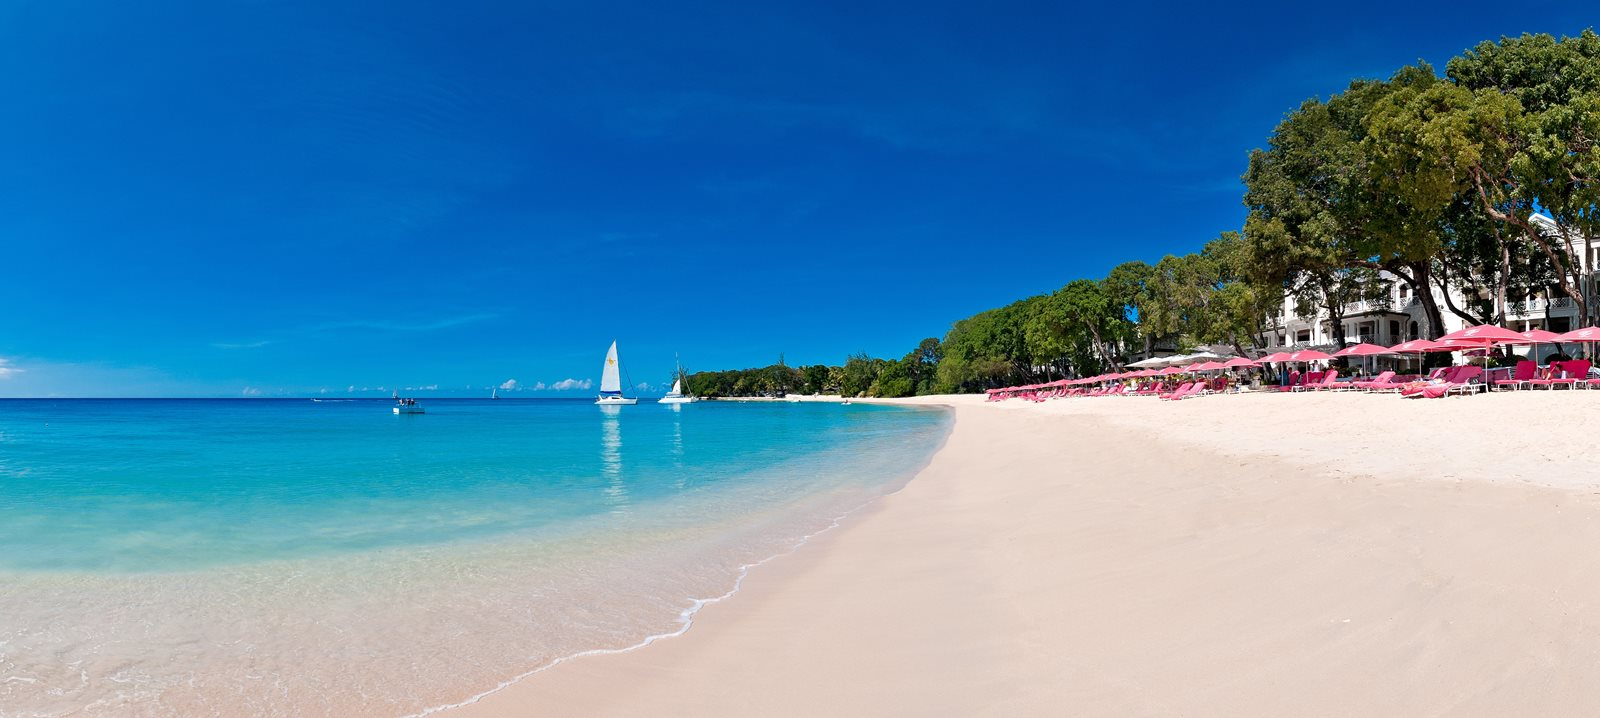 Sandy Lane Beach Luxury Caribbean Resort